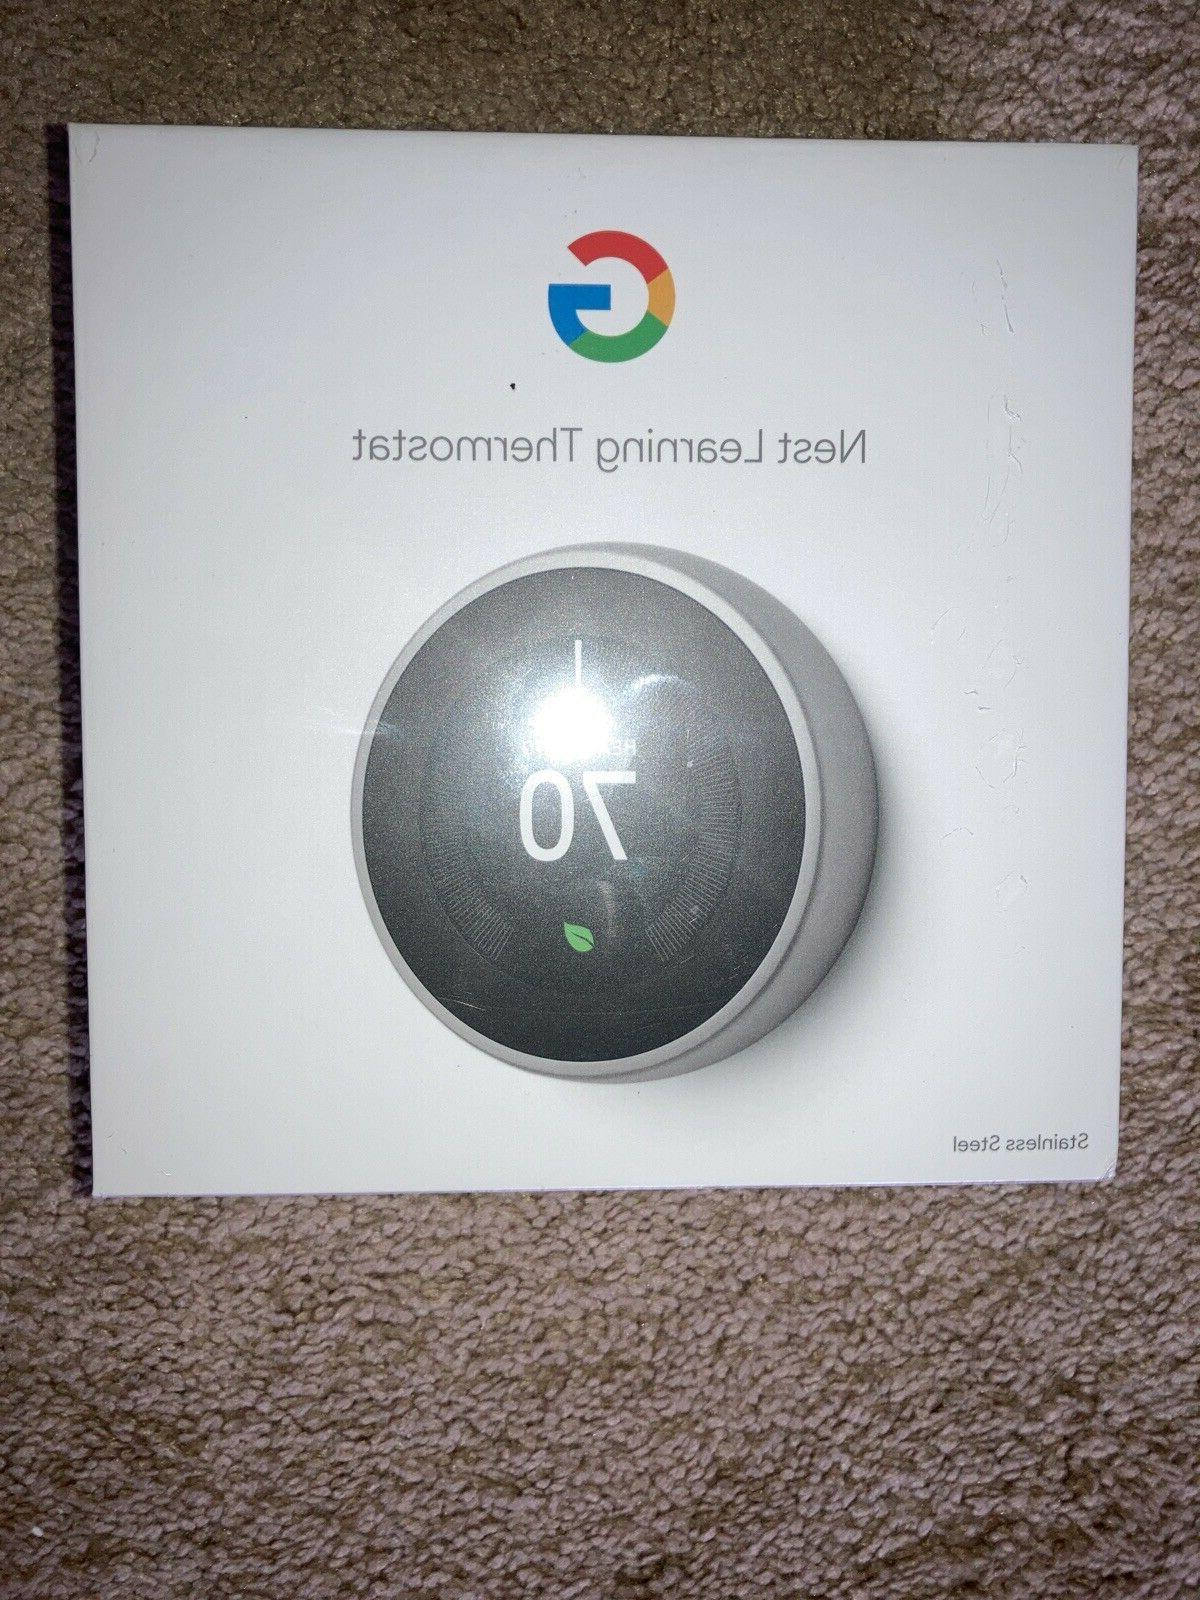 nest 3rd gen learning thermostat stainless steel